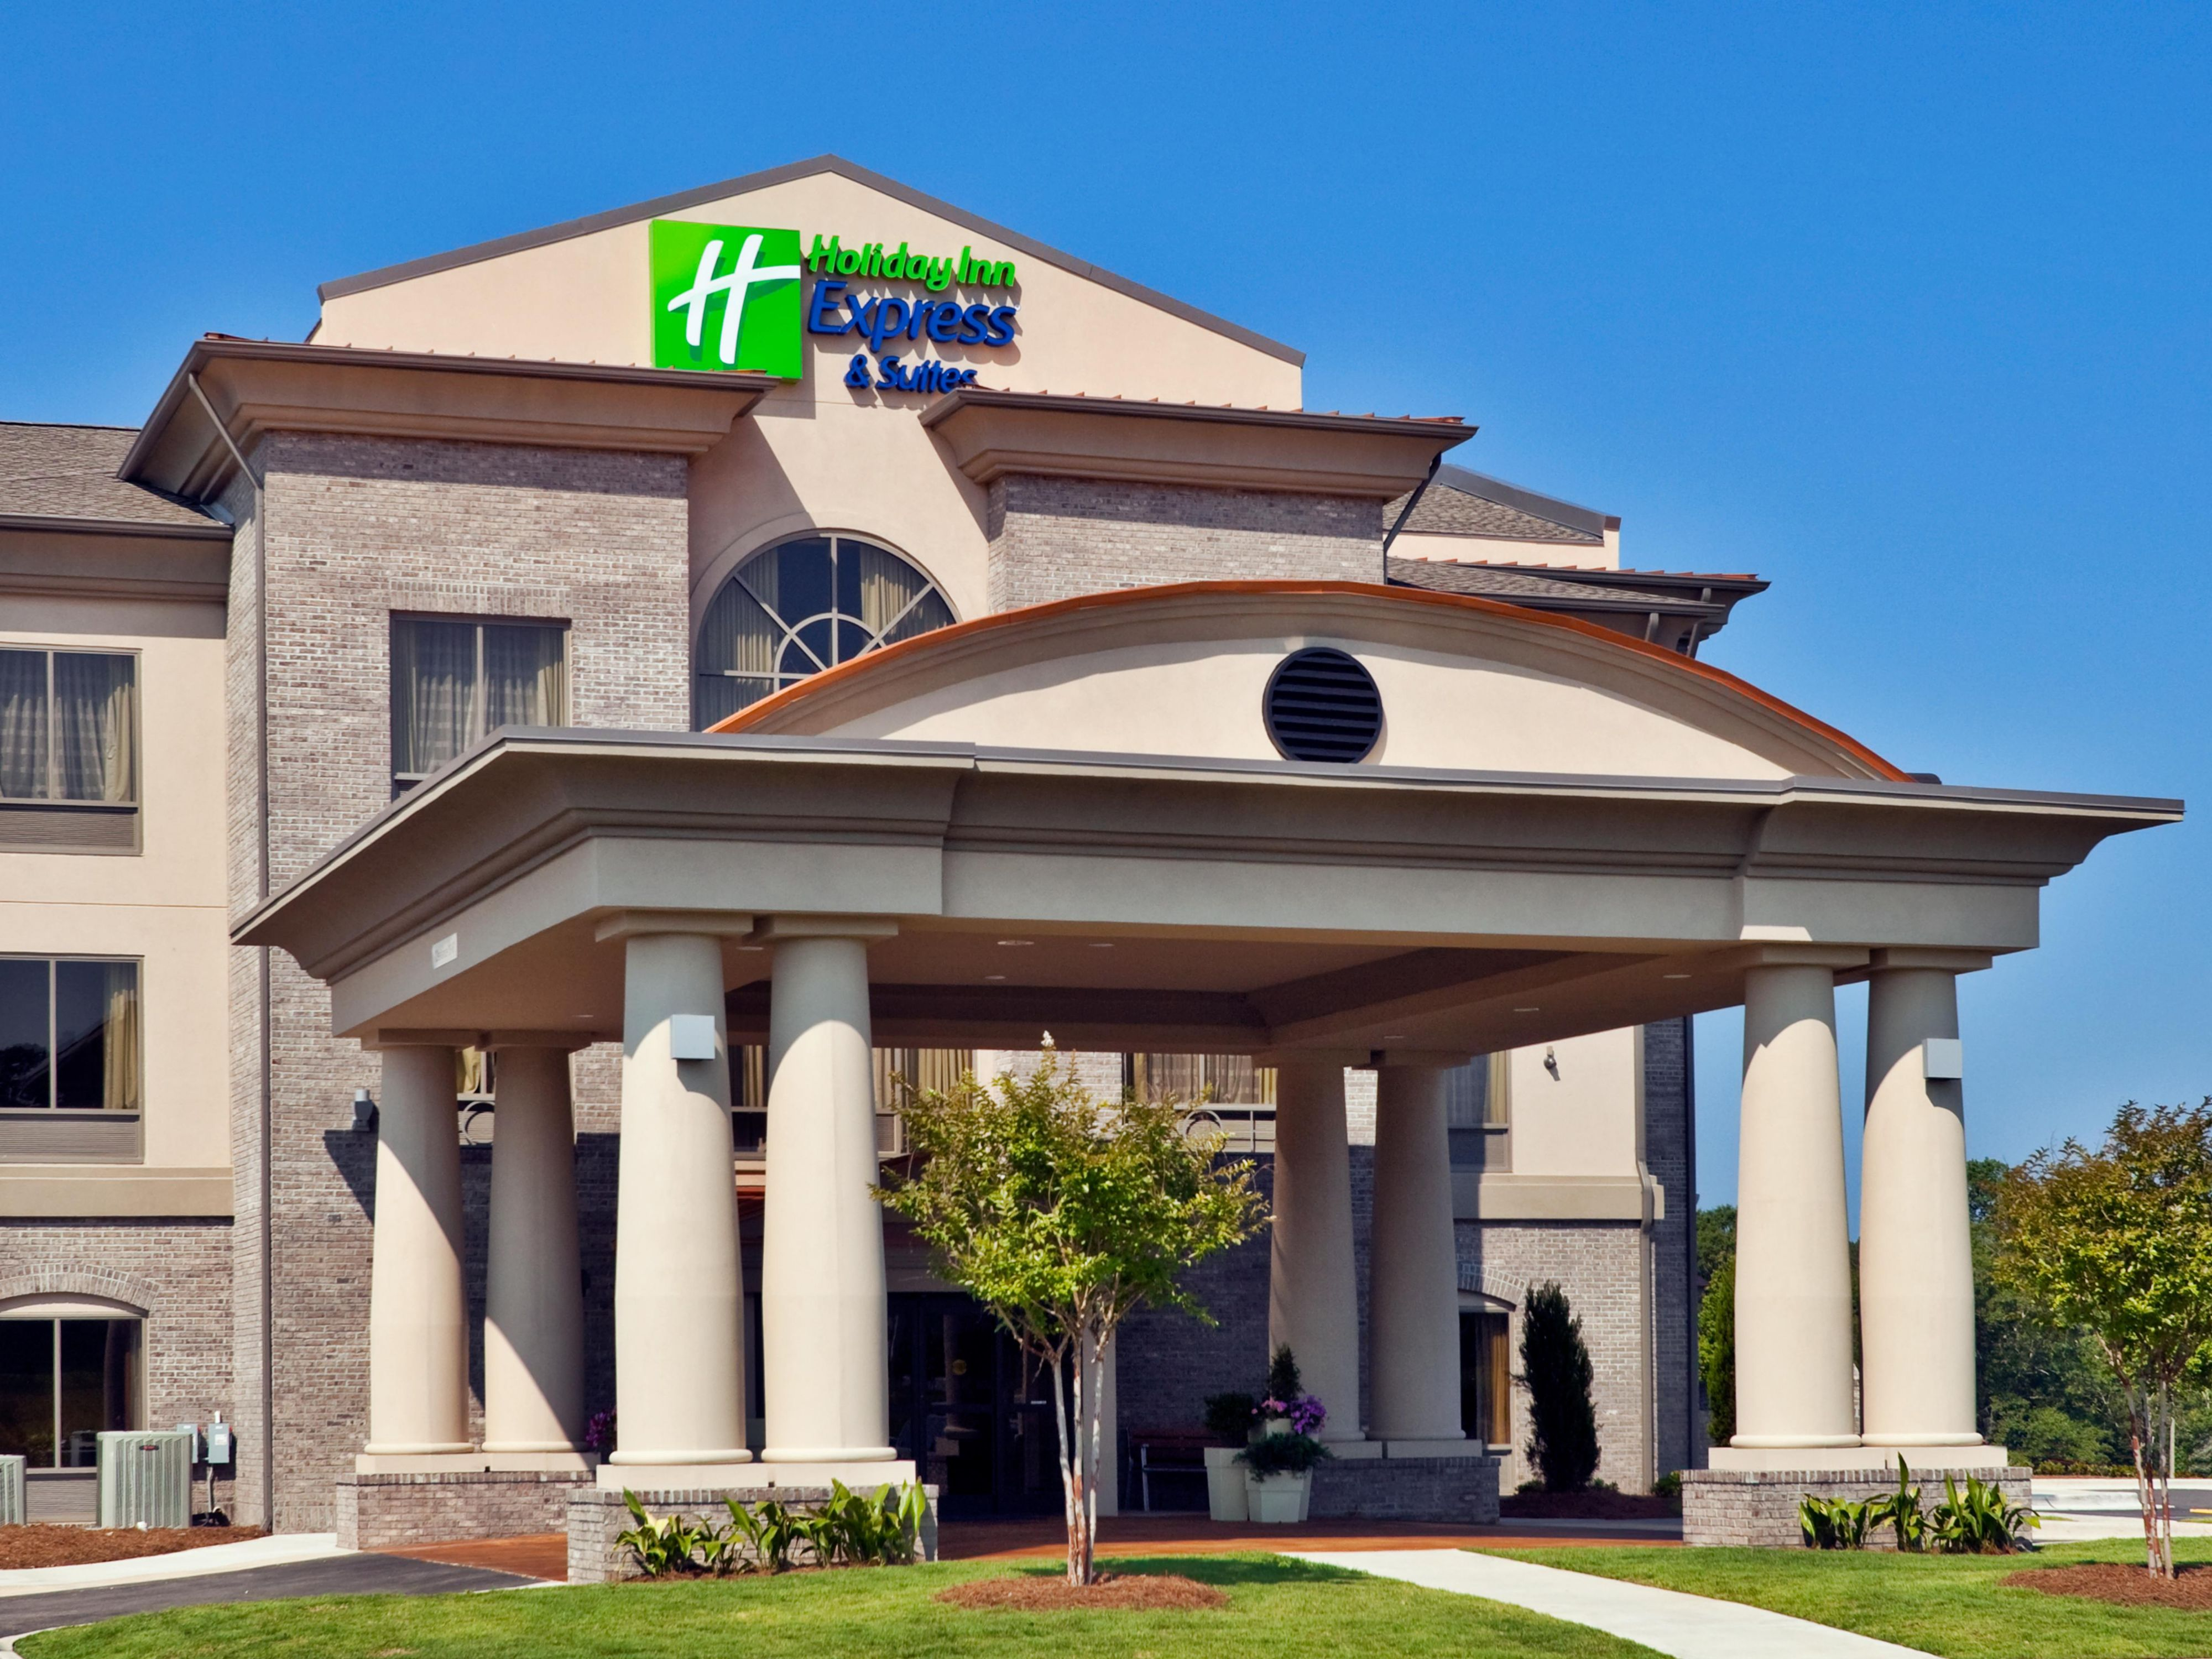 Stay Smart at the area's newest Holiday Inn Express